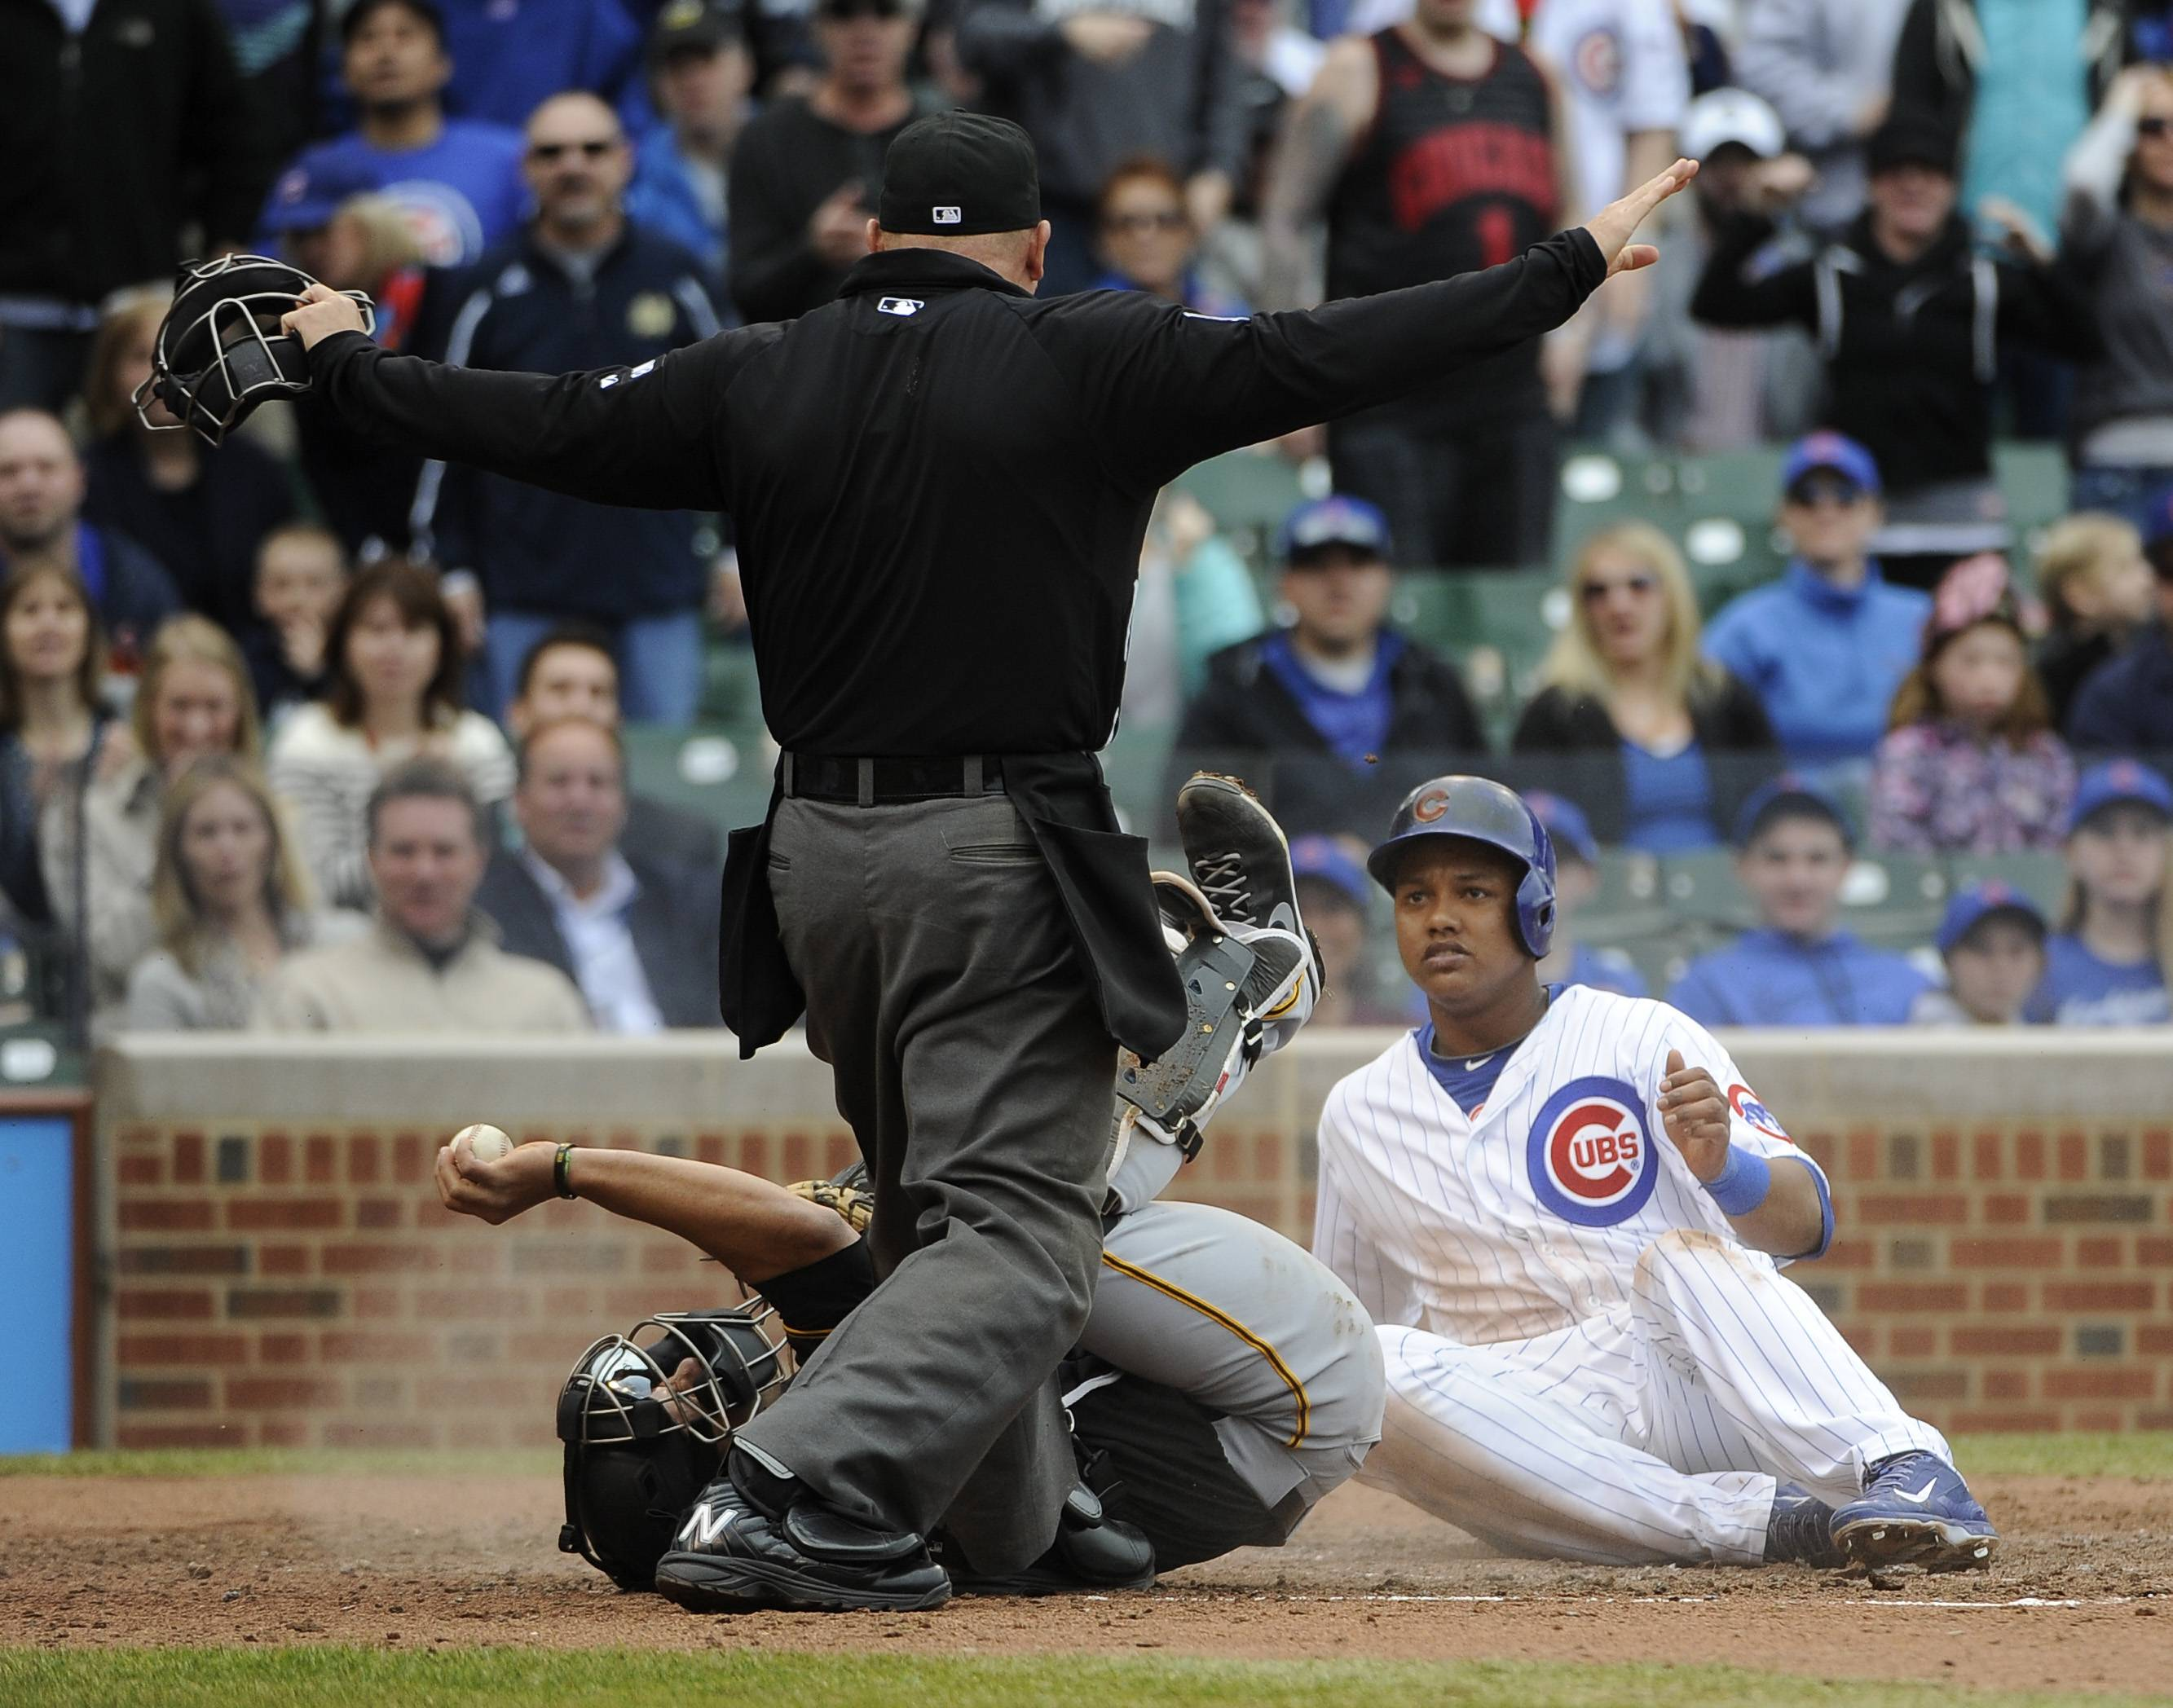 Starlin Castro, right, is called safe at home by umpire Mark Carlson, center, as Pittsburgh Pirates catcher Tony Sanchez, left,  falls over after making a late tag during the fourth inning of a baseball game on Thursday, April 10, 2014, in Chicago.